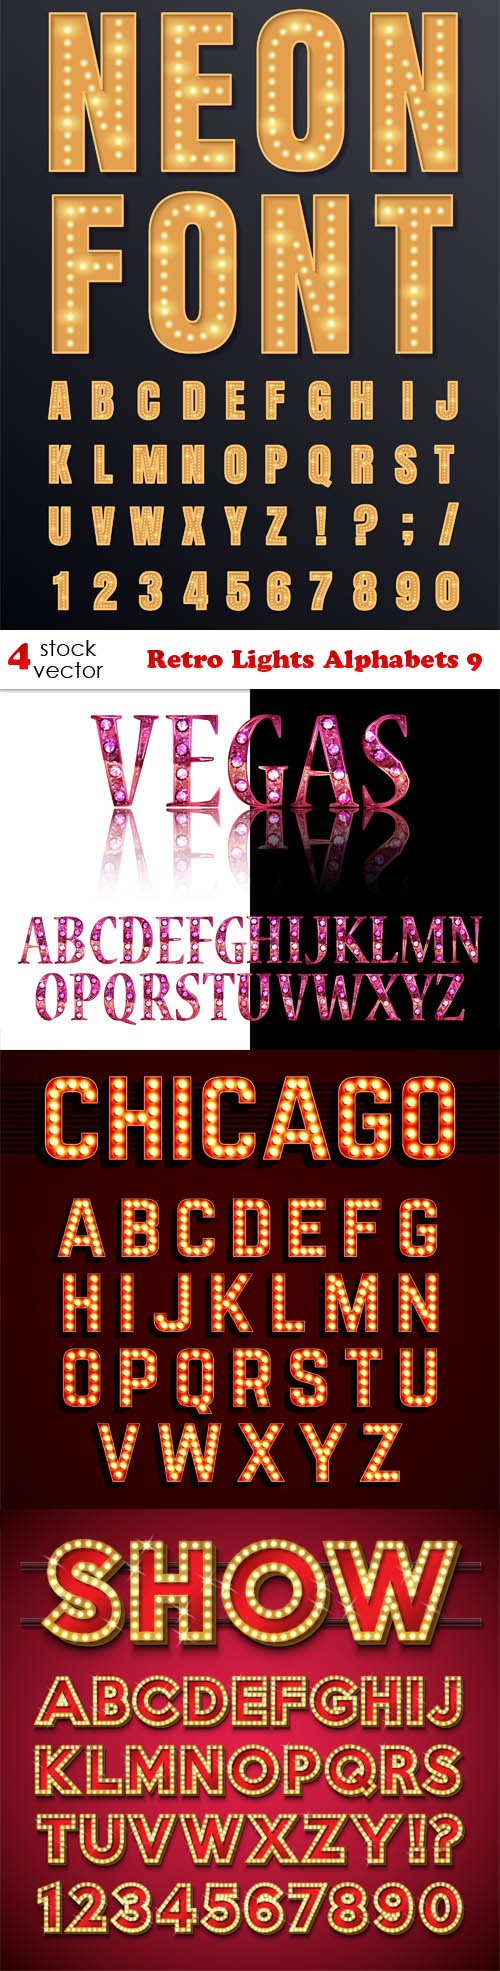 Vectors - Retro Lights Alphabets 9